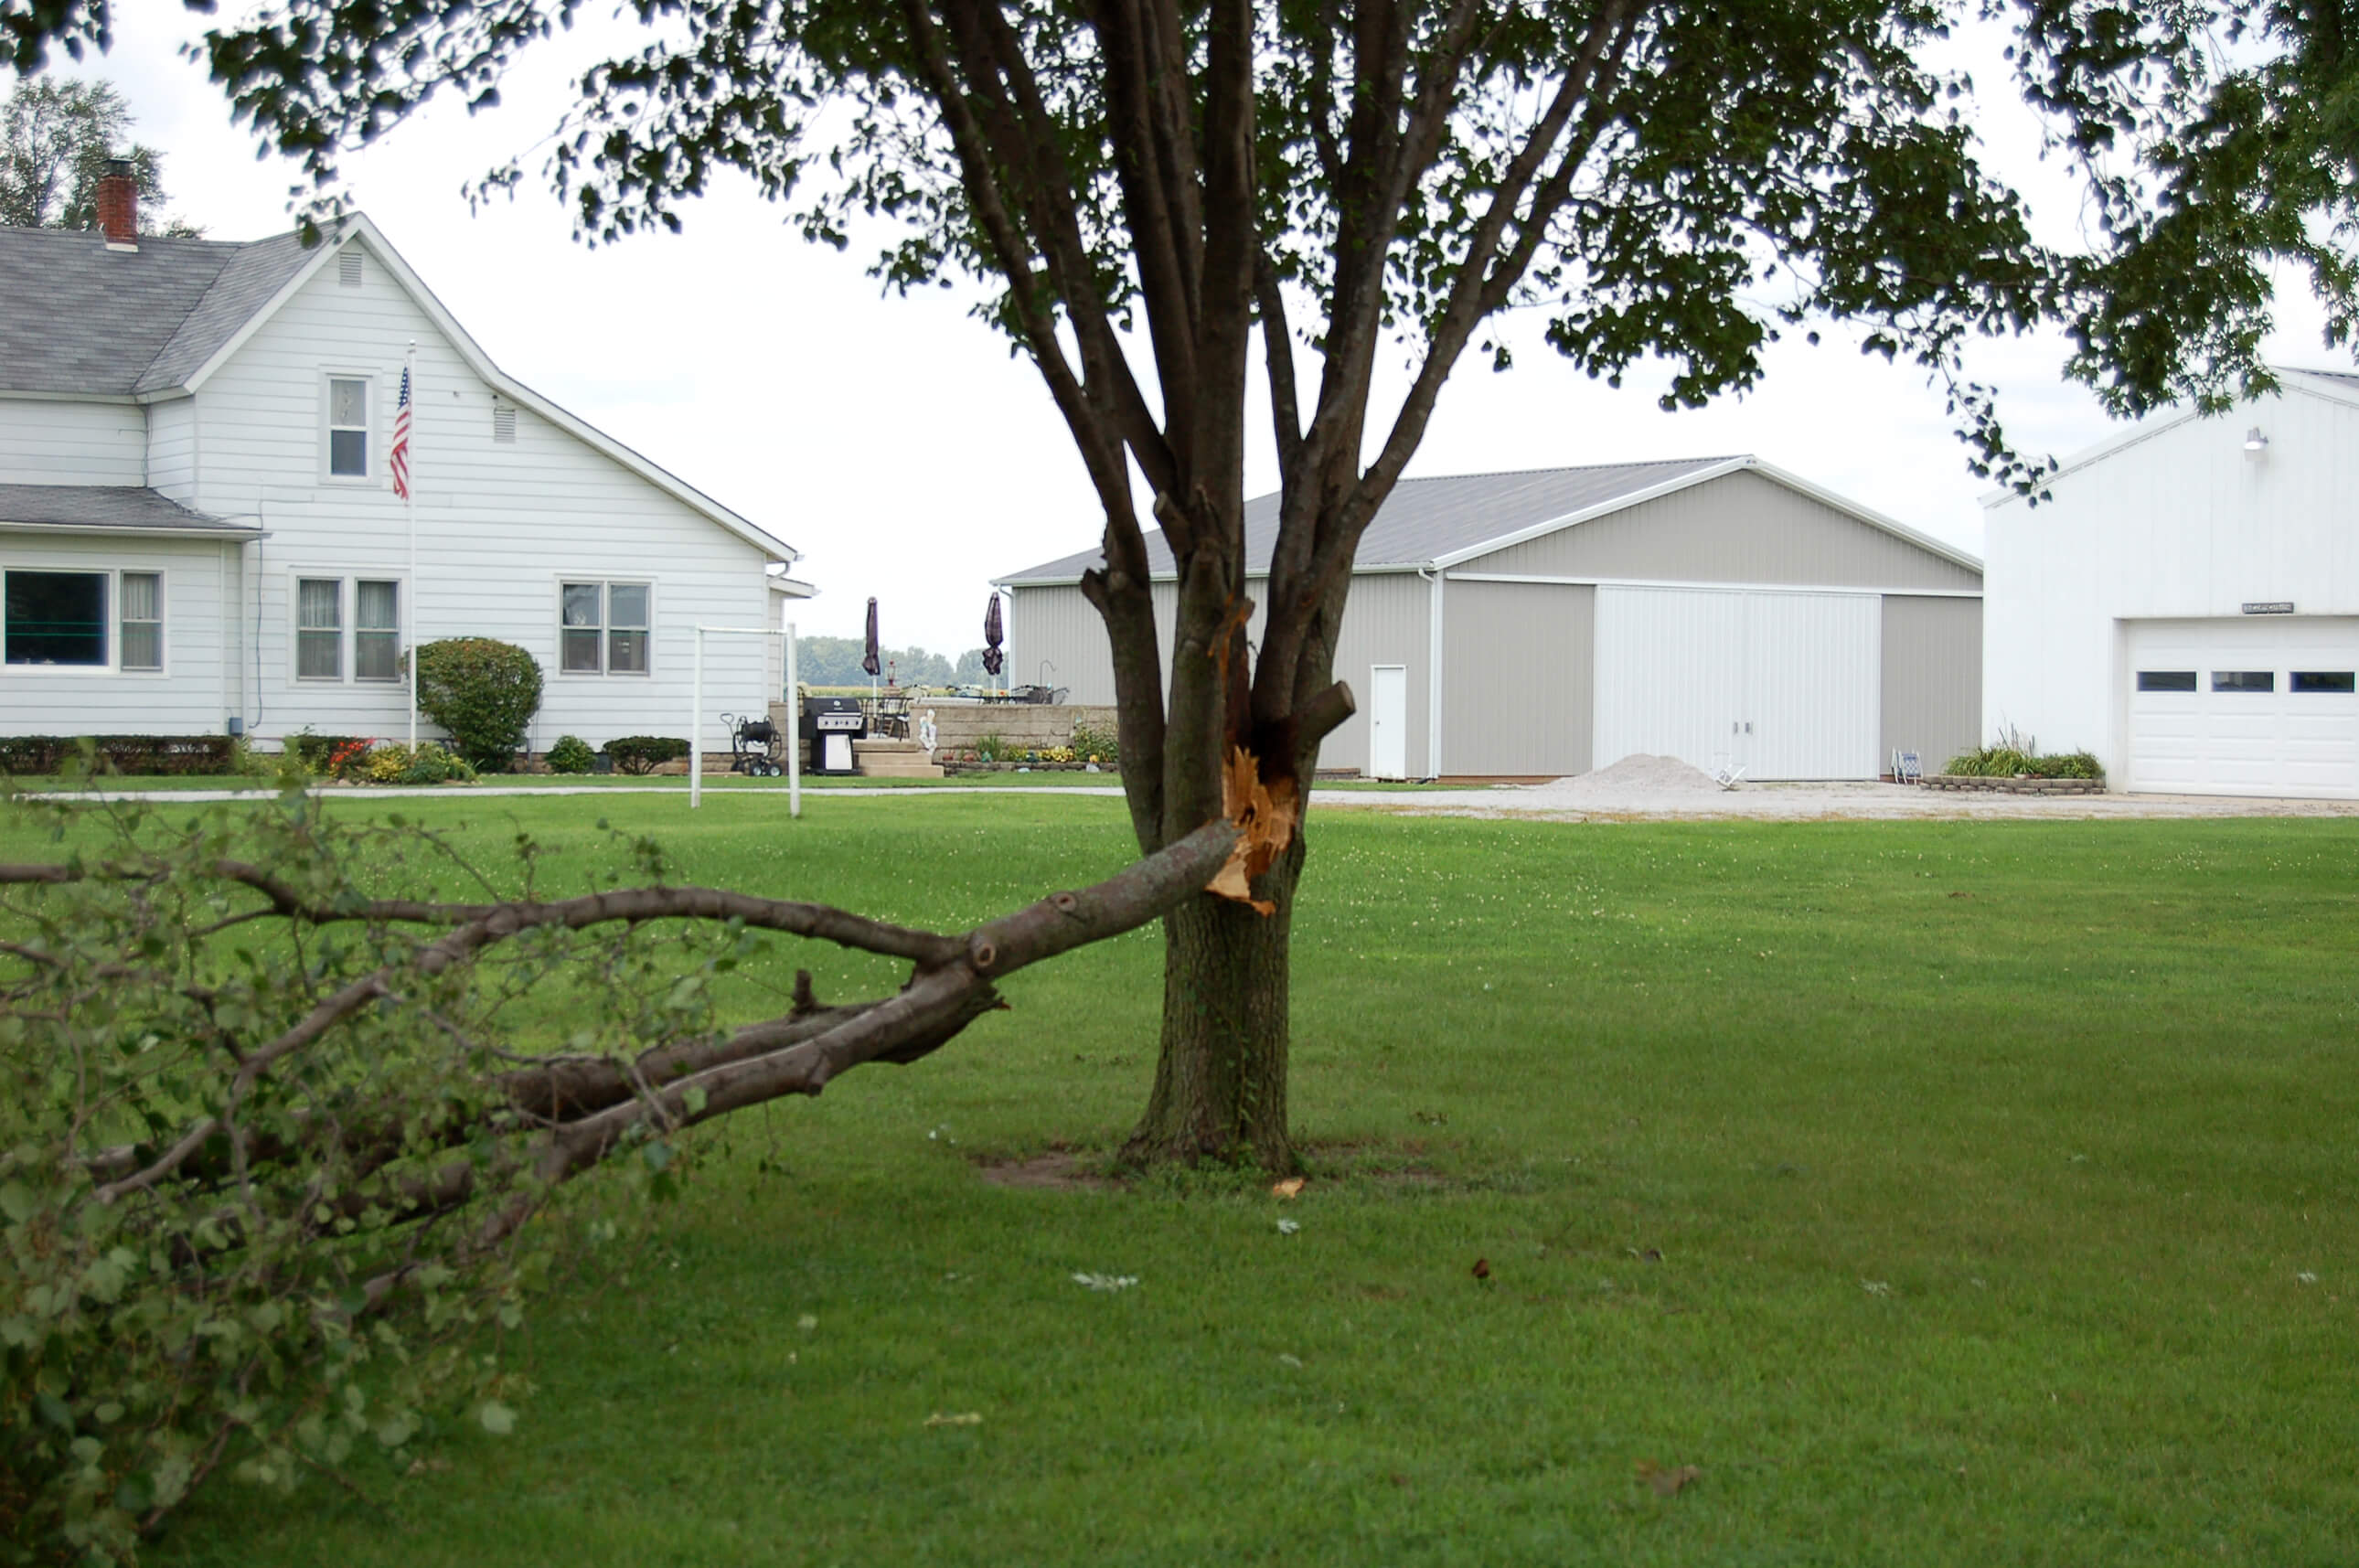 Extension Resources Help Homeowners Cope With Tree Damage - Purdue University